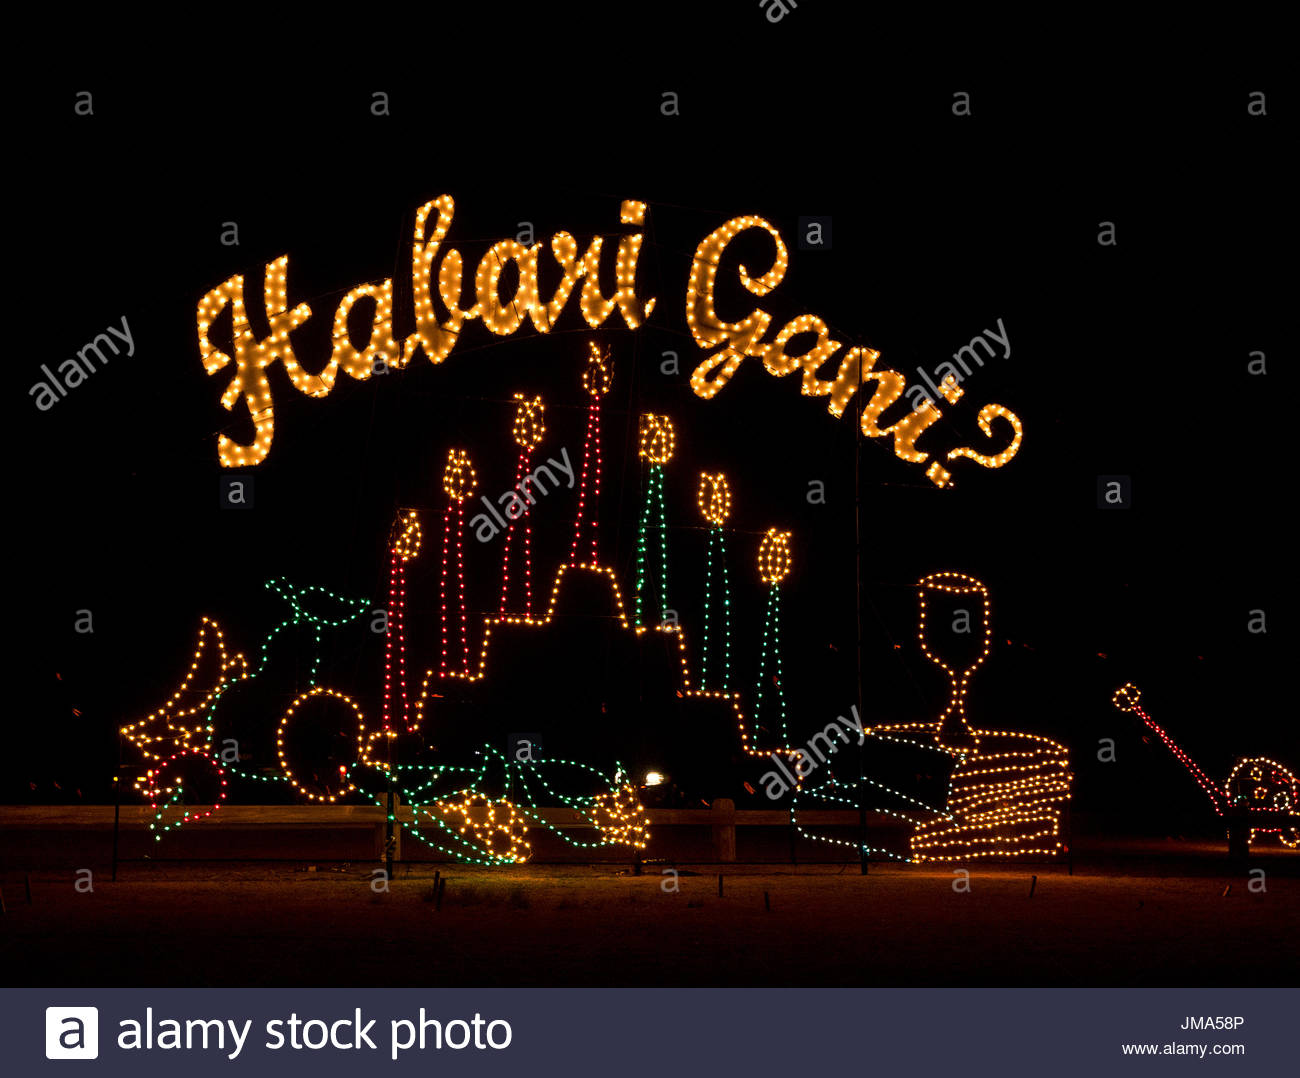 2015 jones beach holiday light spectacular swahili greeting a stock 2015 jones beach holiday light spectacular swahili greeting a sampling of jones beach 2015 holiday light spectacular show ny produced by live nation m4hsunfo